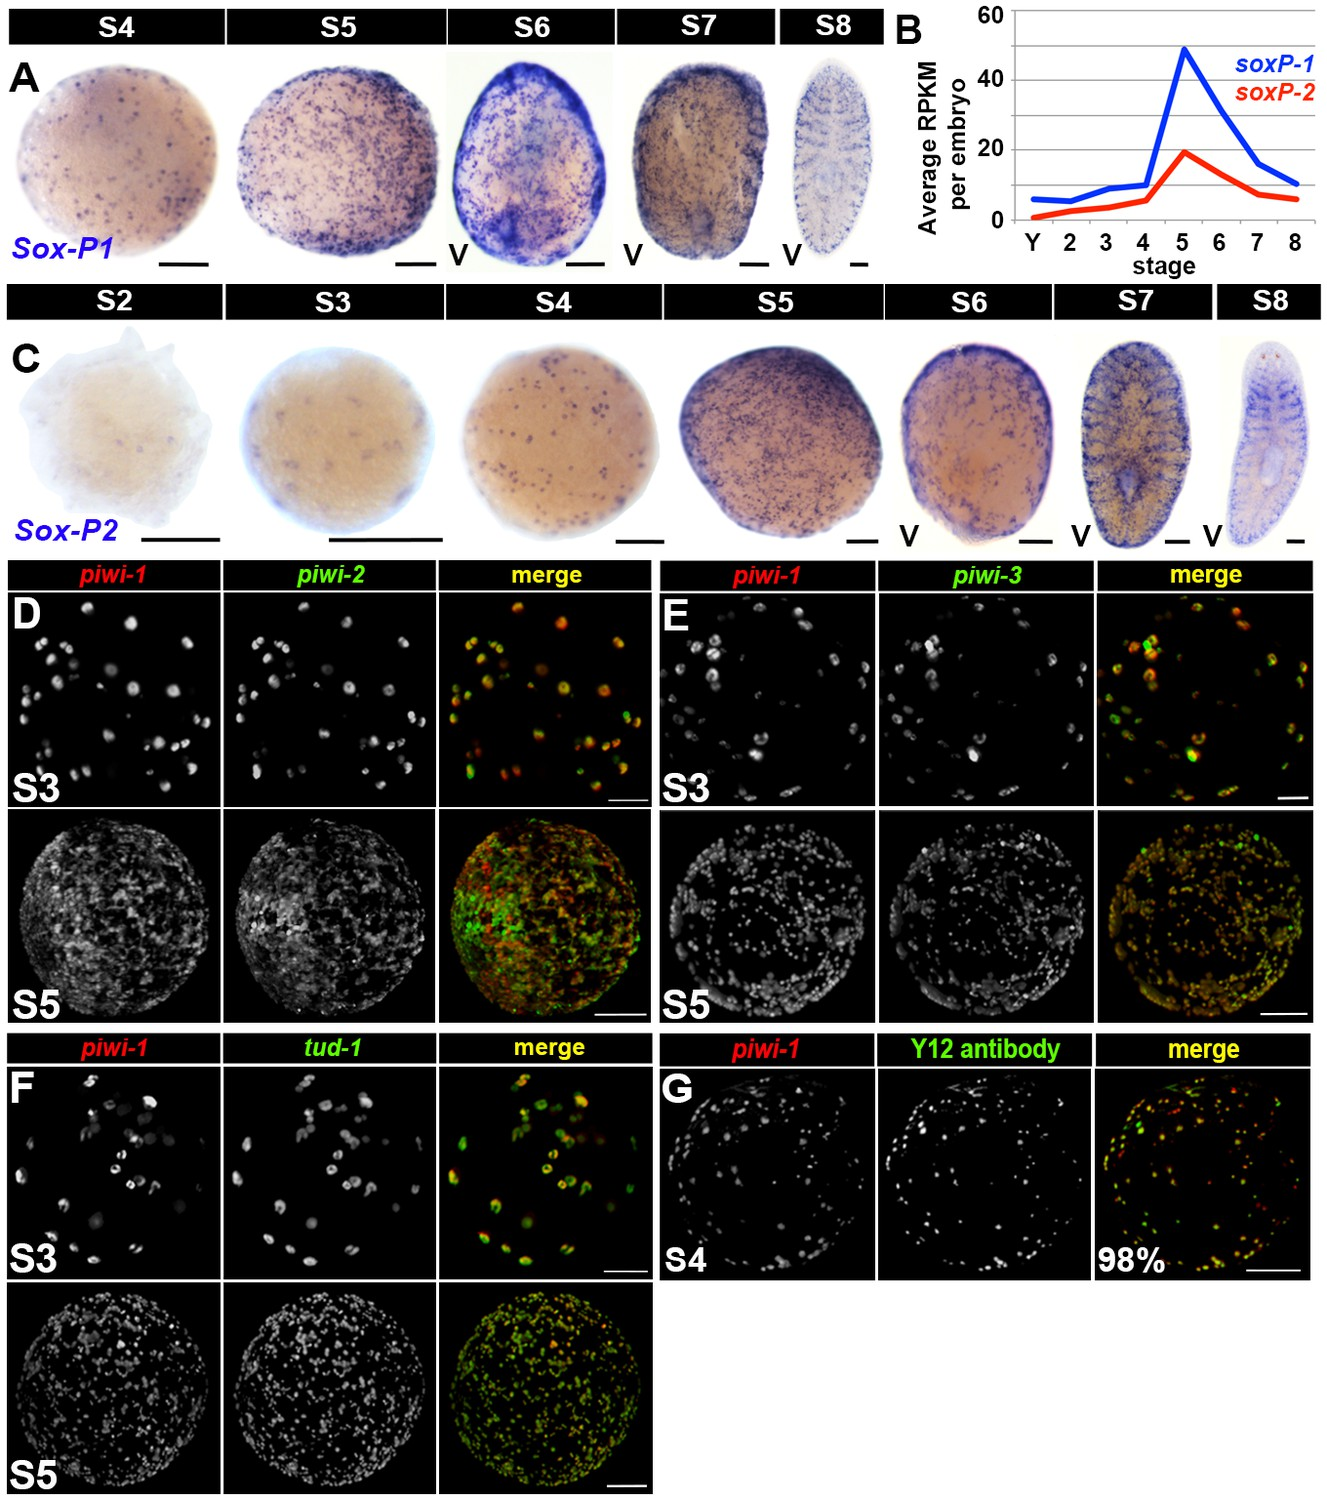 Embryonic Origin Of Adult Stem Cells Required For Tissue Homeostasis Eye Shadow Just Miss 223 Asexual Neoblast Enriched Markers Are Coexpressed In Piwi 1 During Embryogenesis